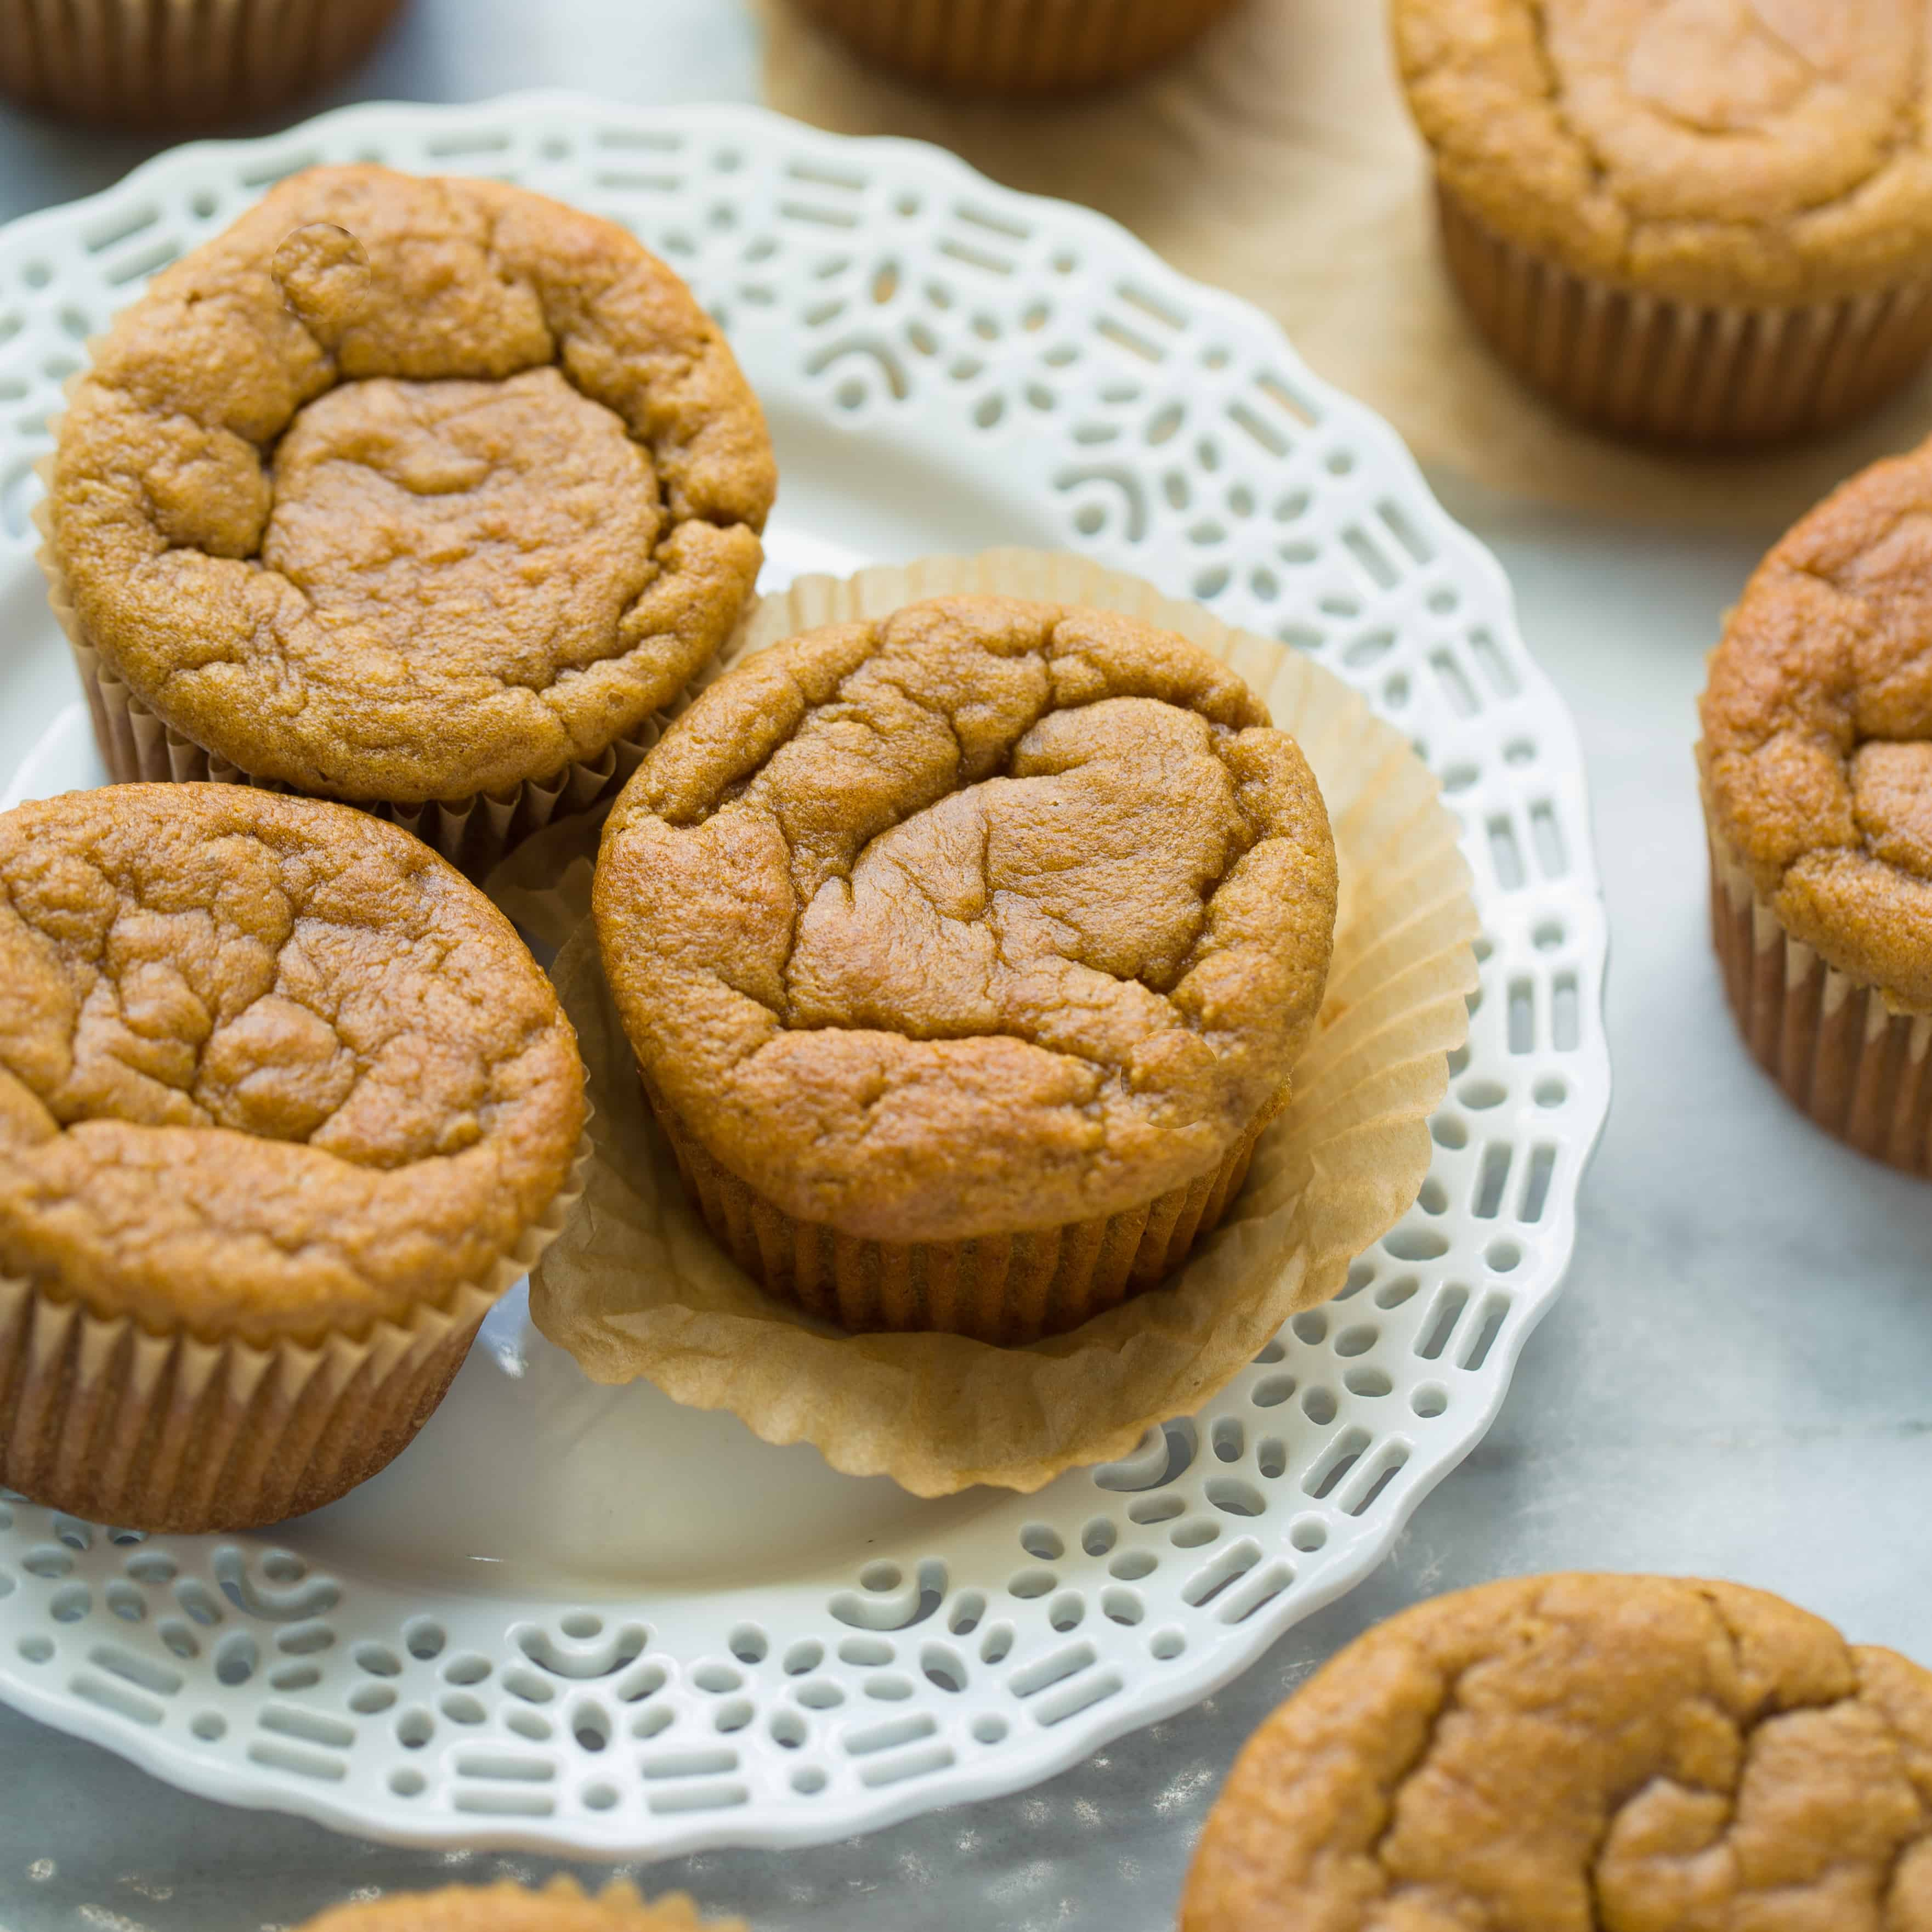 Coconut Flour Peanut Butter Banana Protein Muffins